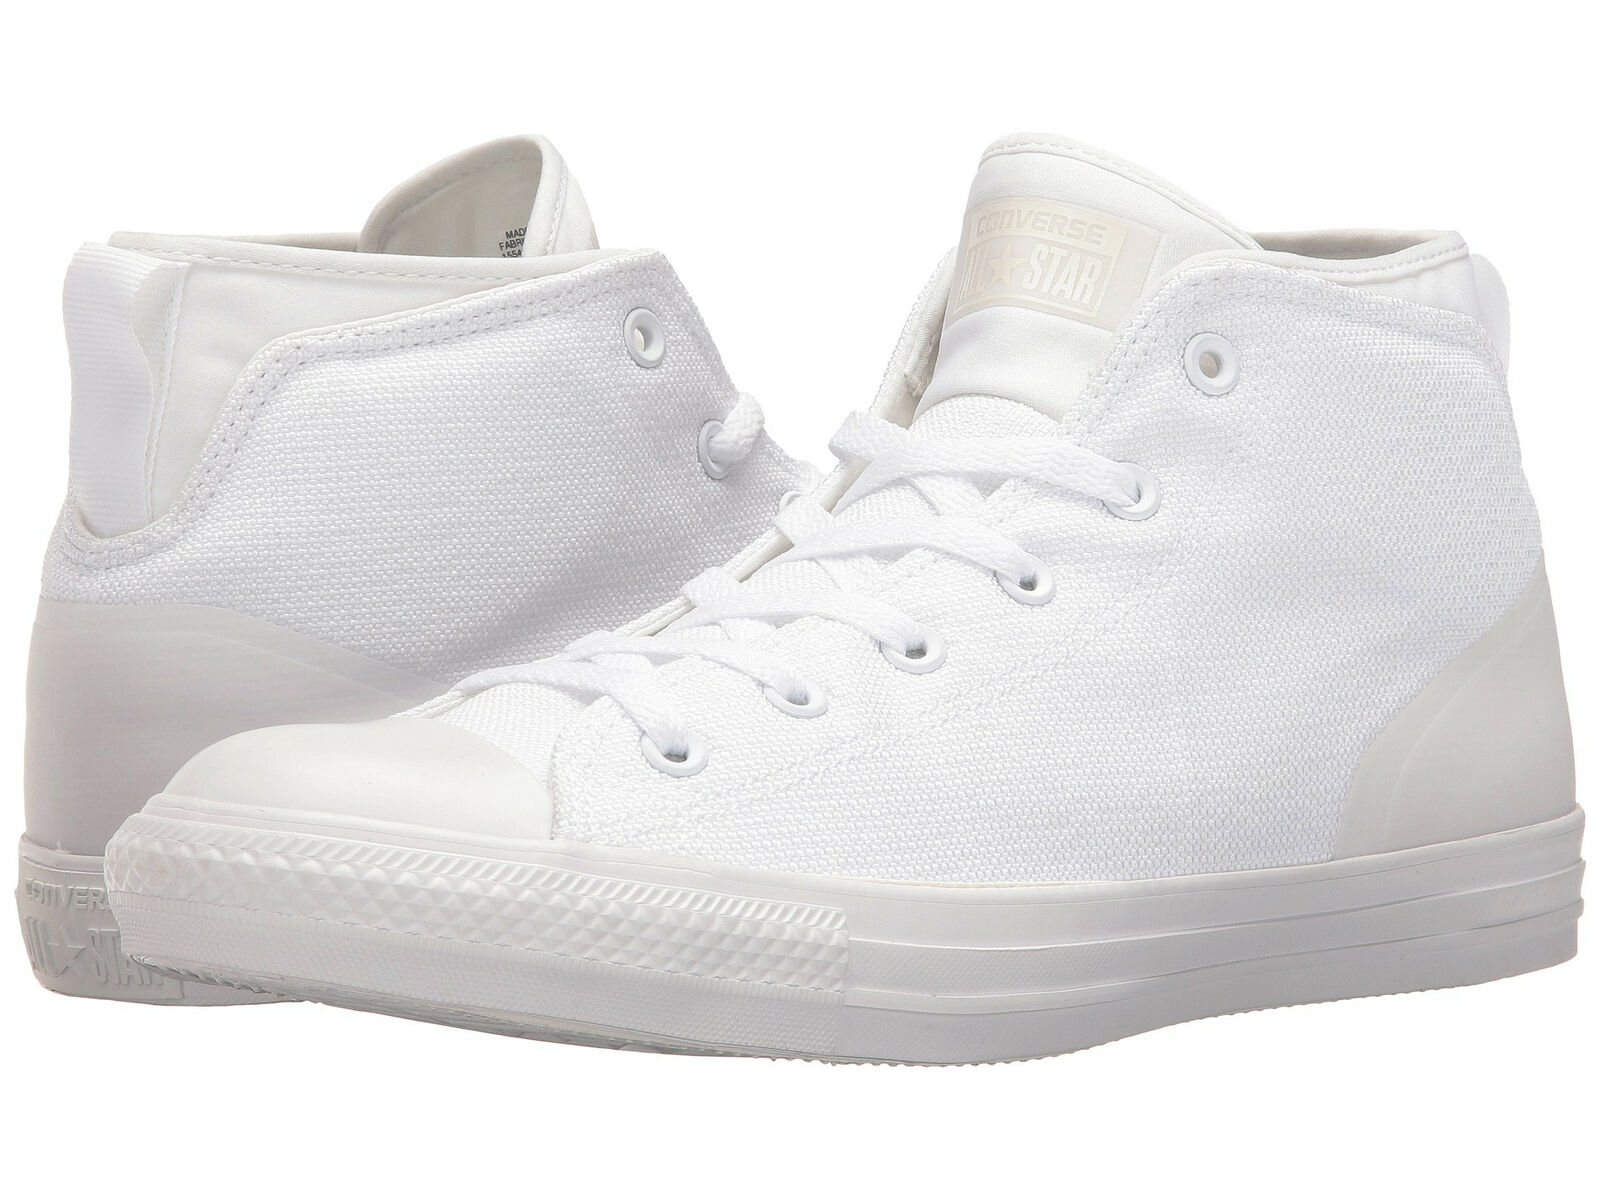 Converse Unisex Chuck Taylor All Star Syde Street Mid White Sneaker shoes